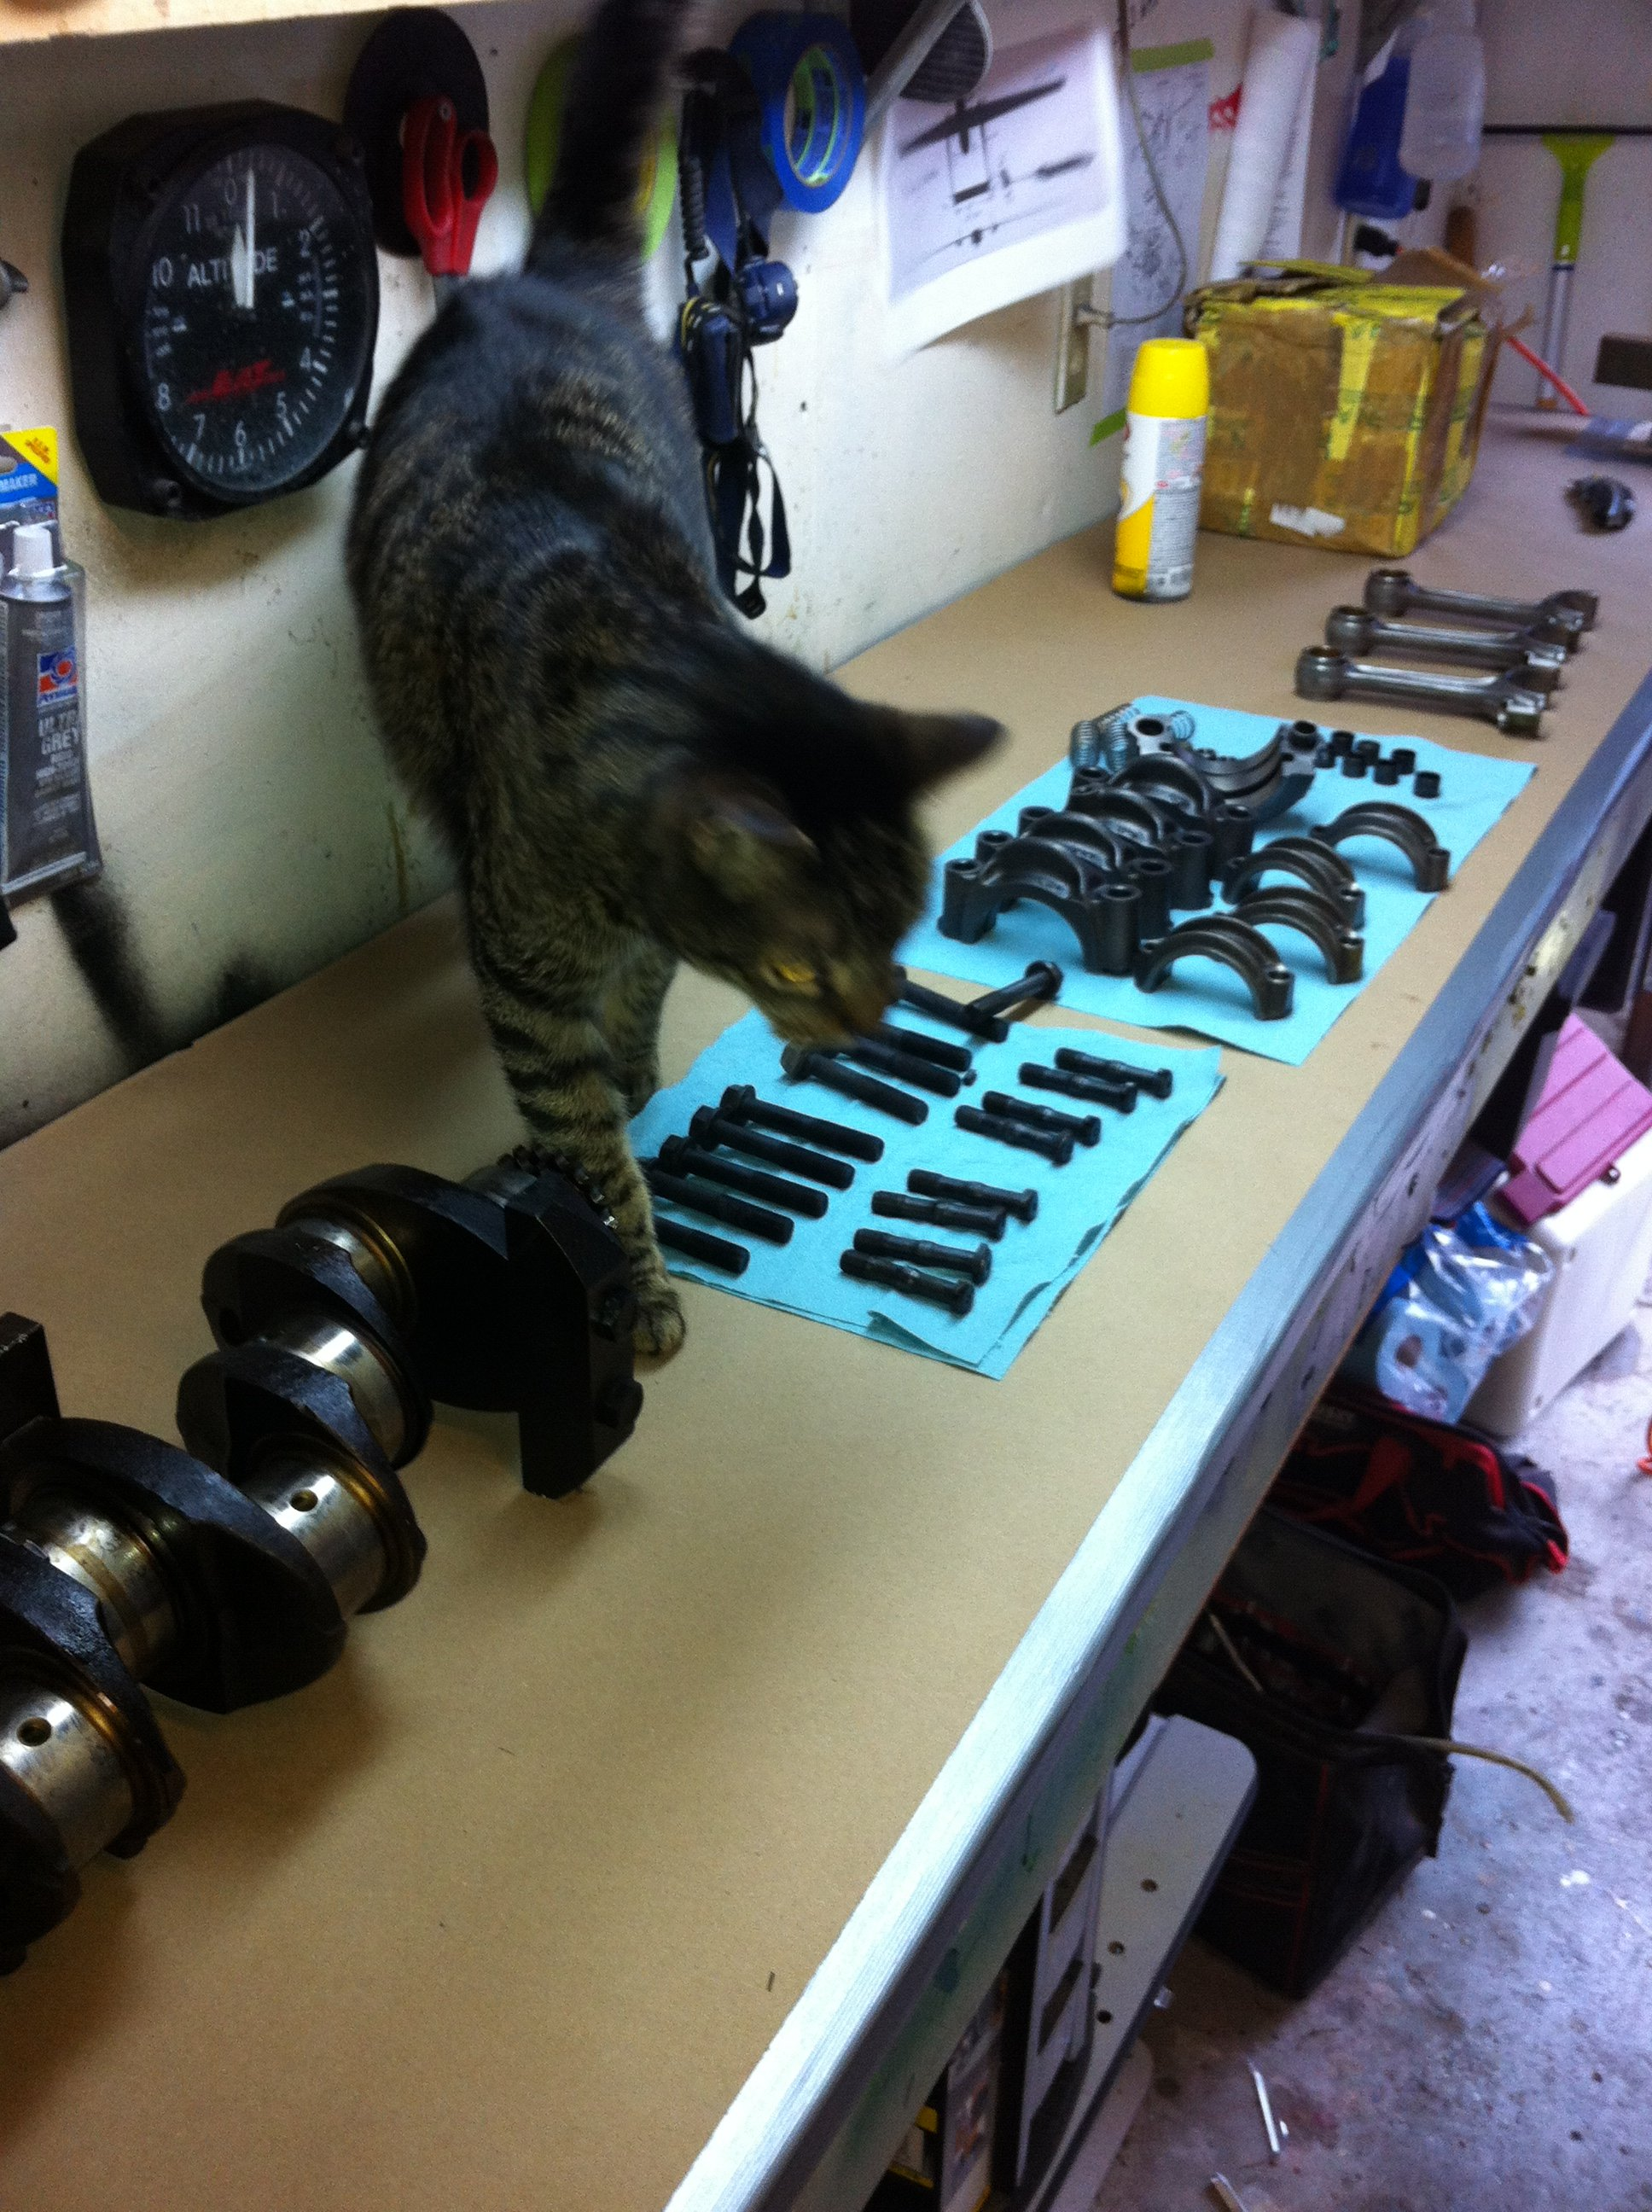 Tabby Cat comes down to inspect work in progress